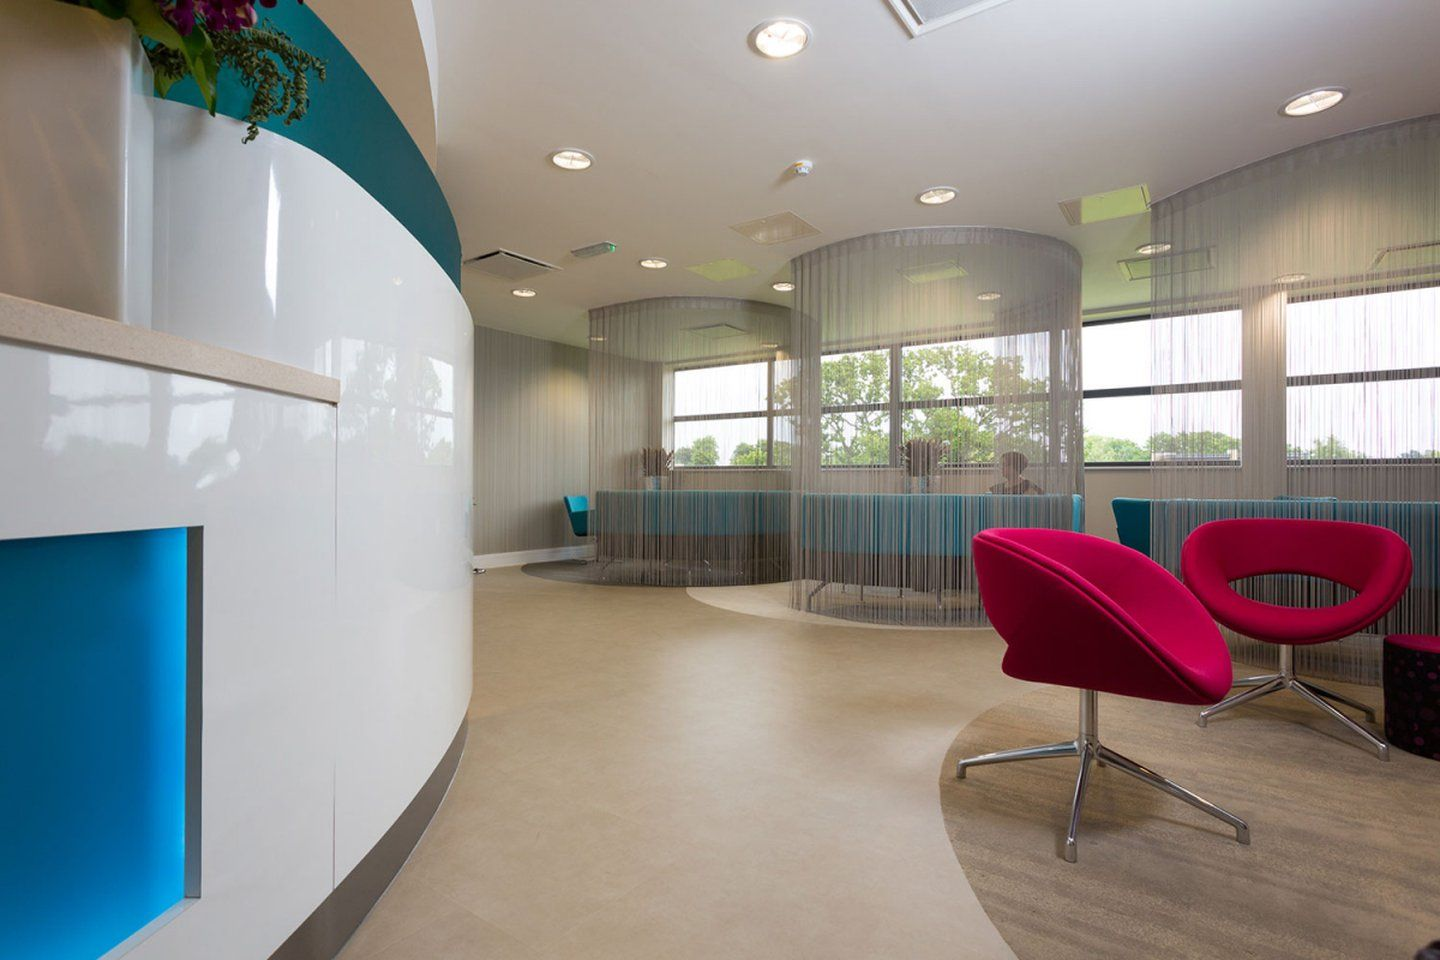 Inside the reception area at our fertility clinic in Manchester